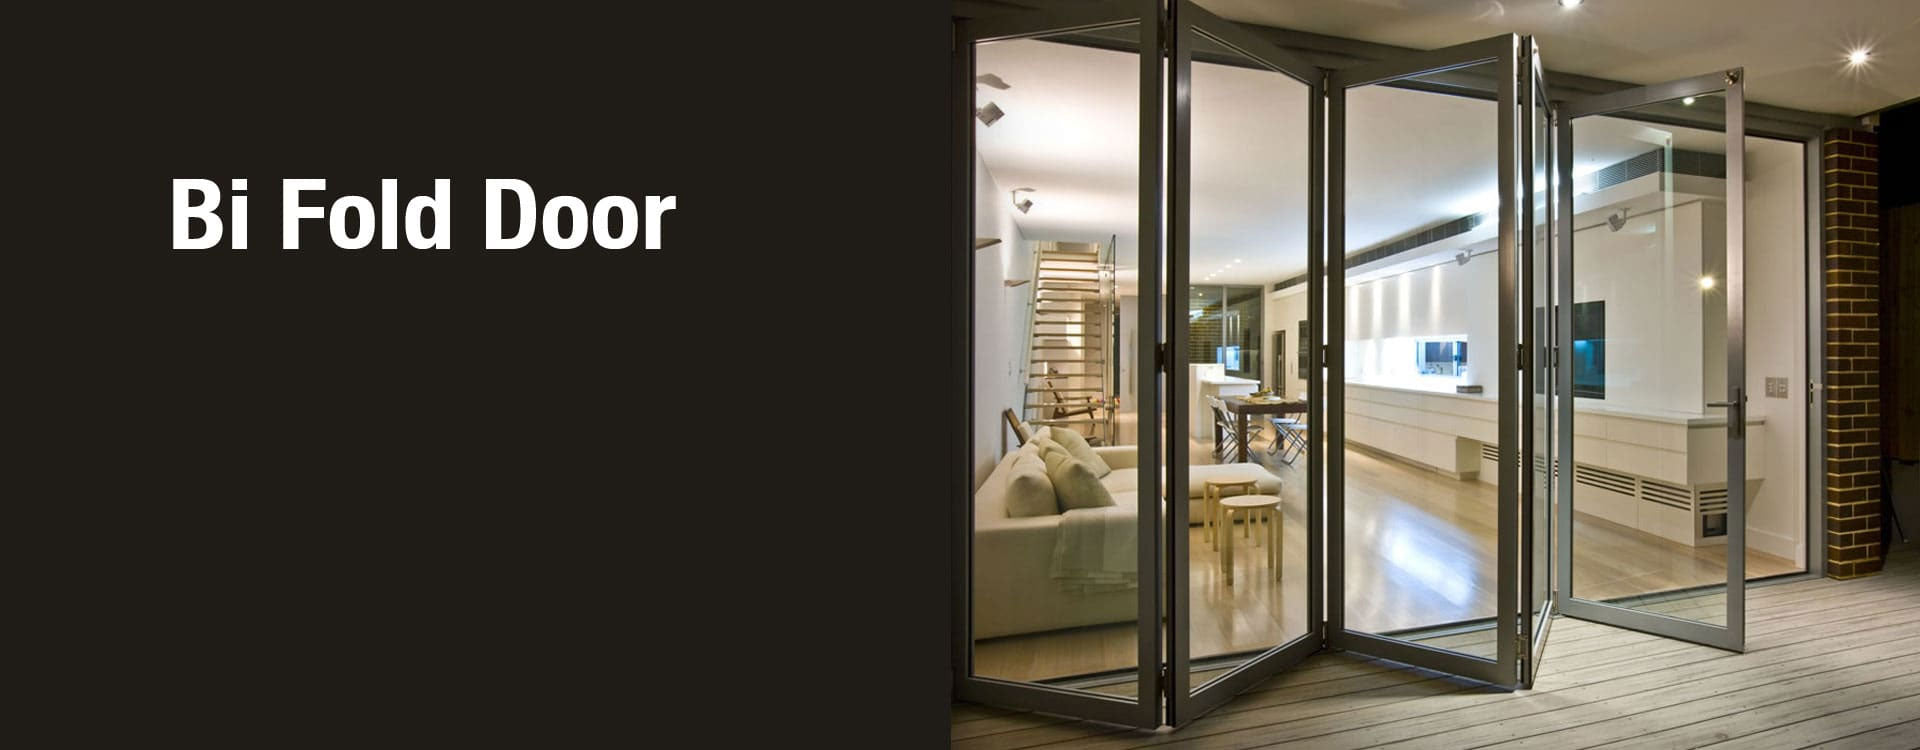 BiFold Doors You Will Love in 2021